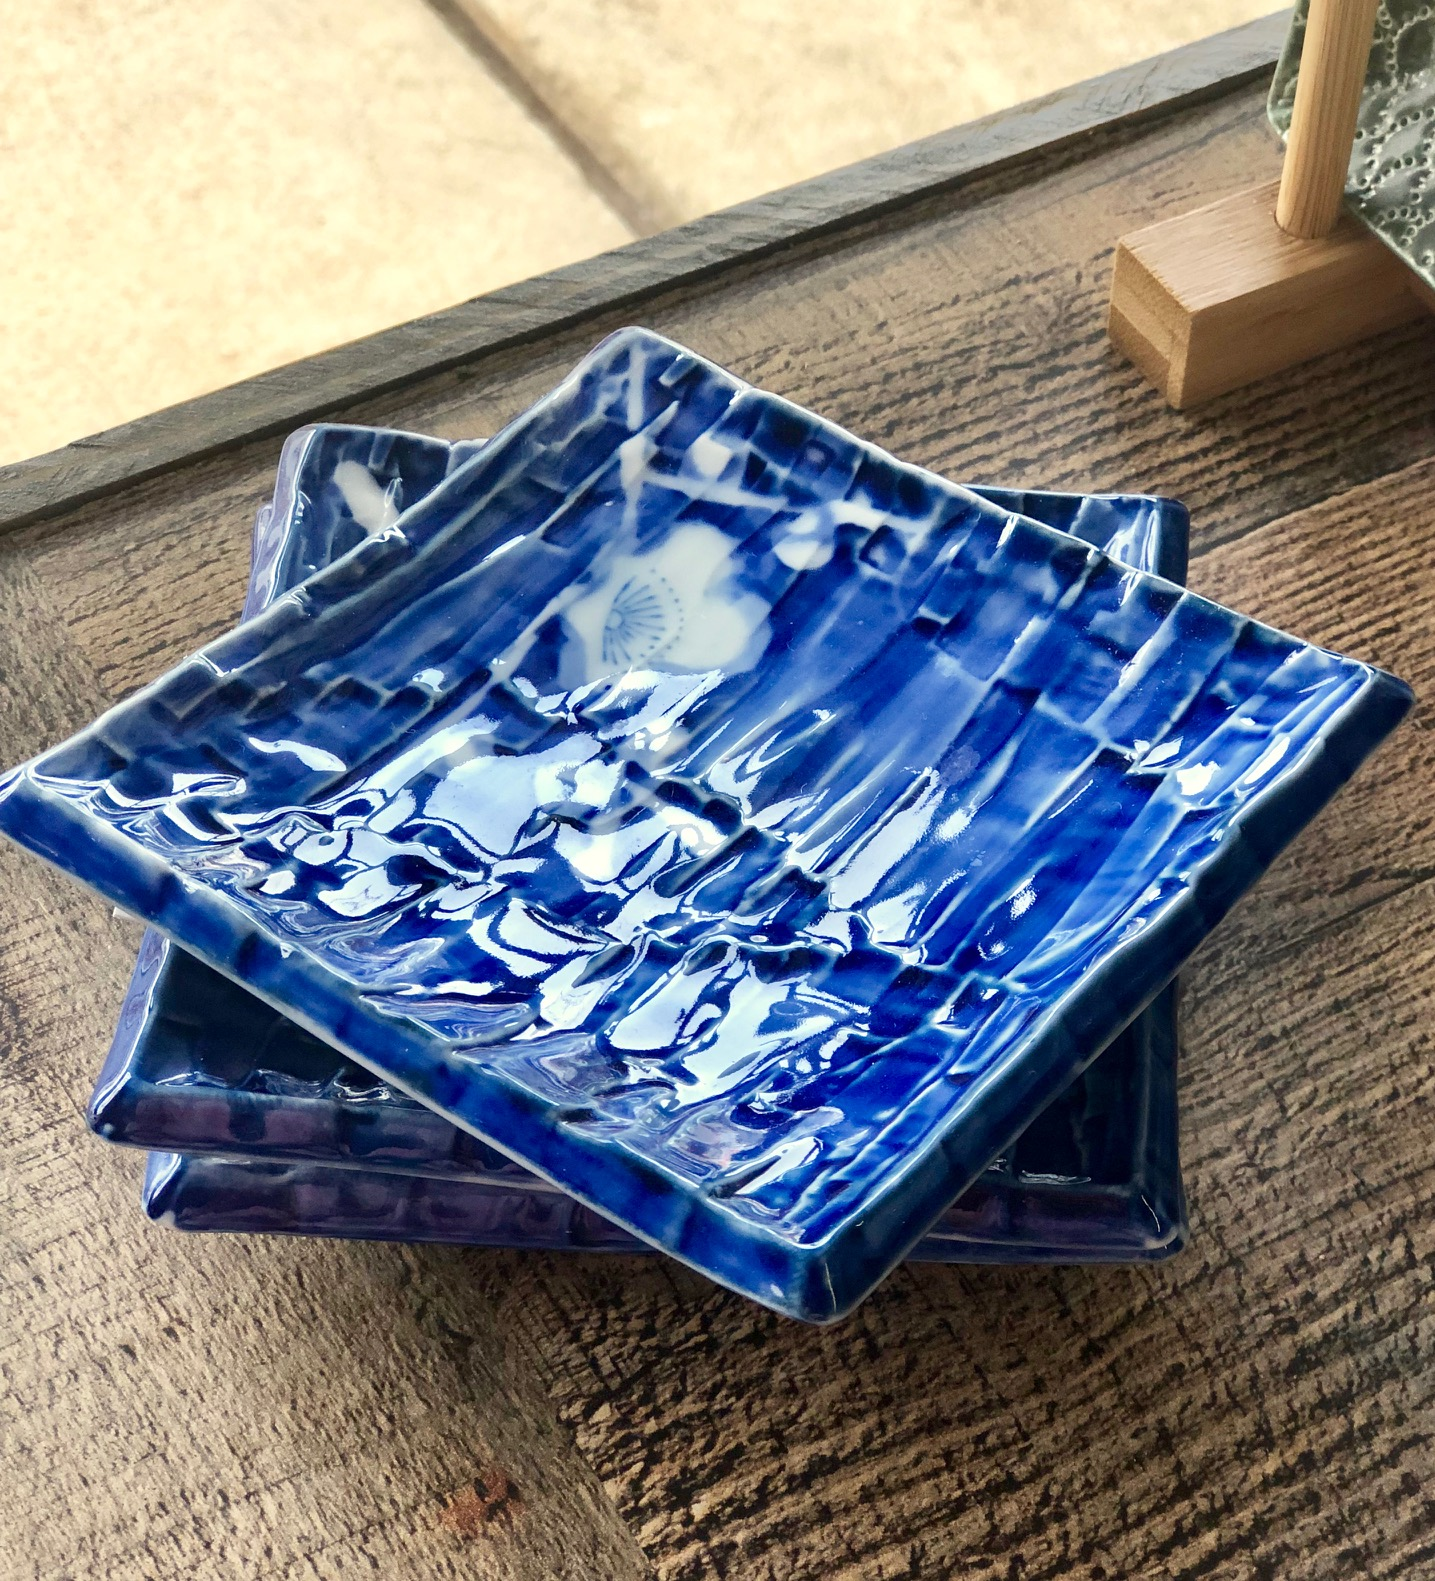 Handmade dishes in vivid azure add interest and conversation to your table.